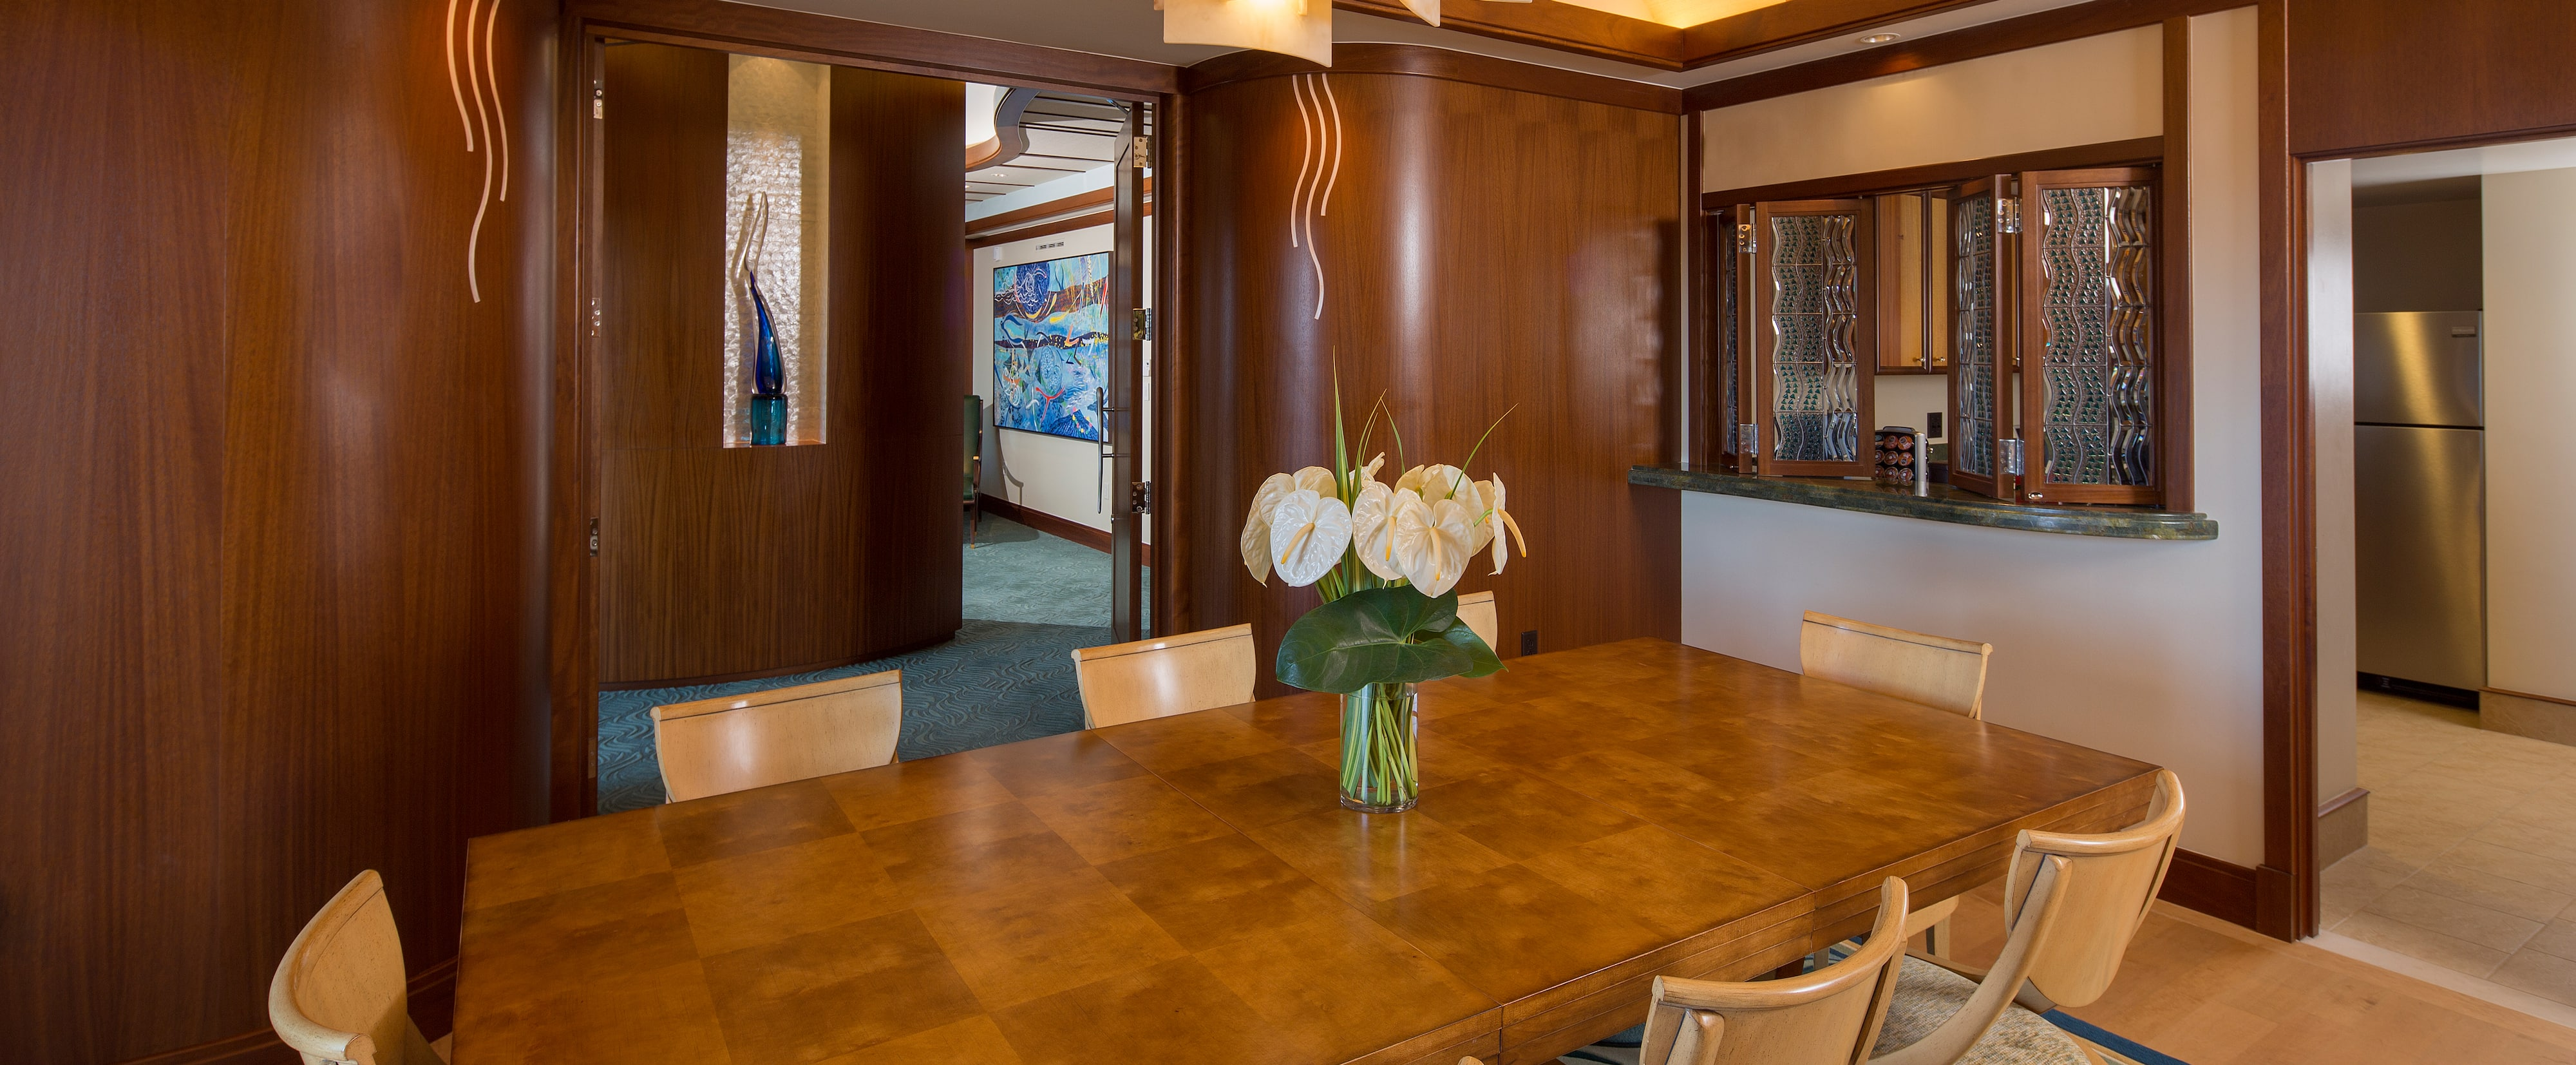 The dining area and butler pantry of the Deluxe 1-Bedroom Suite